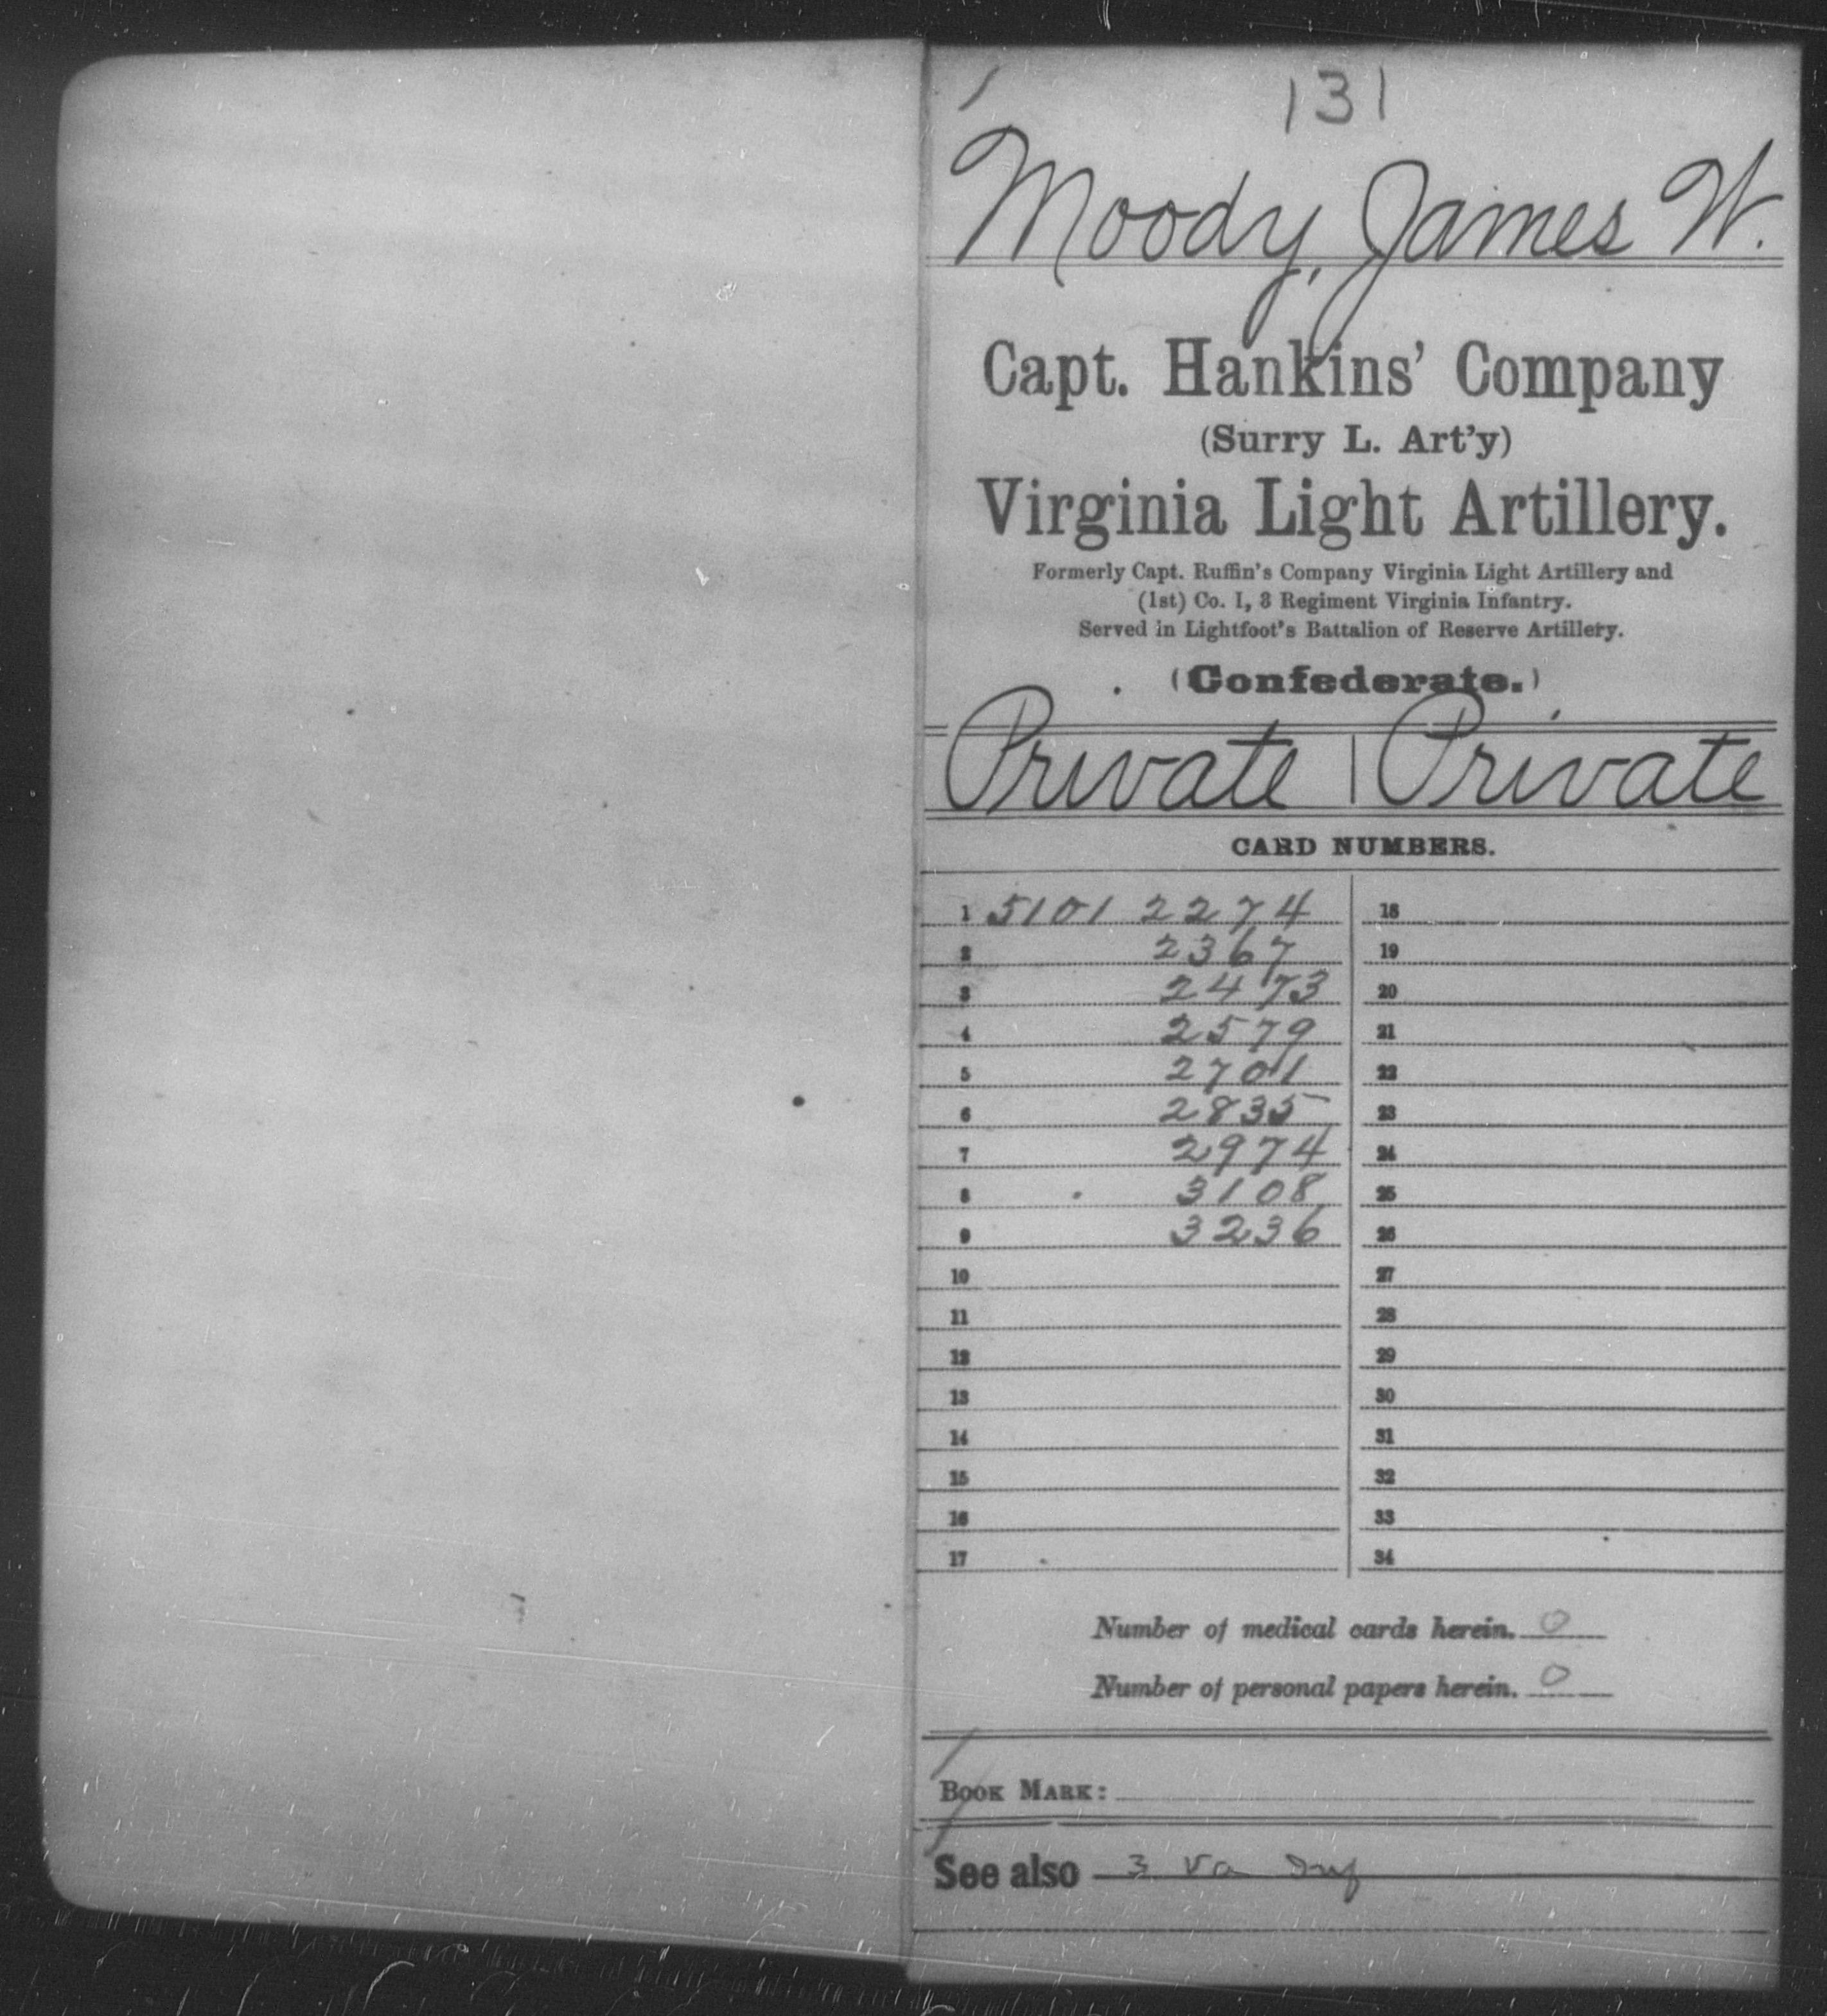 Confederate Soldiers from the State of Virginia - Moody, James W - Capt. Hankin's Co., Light Artillery (Surry Light Artillery)